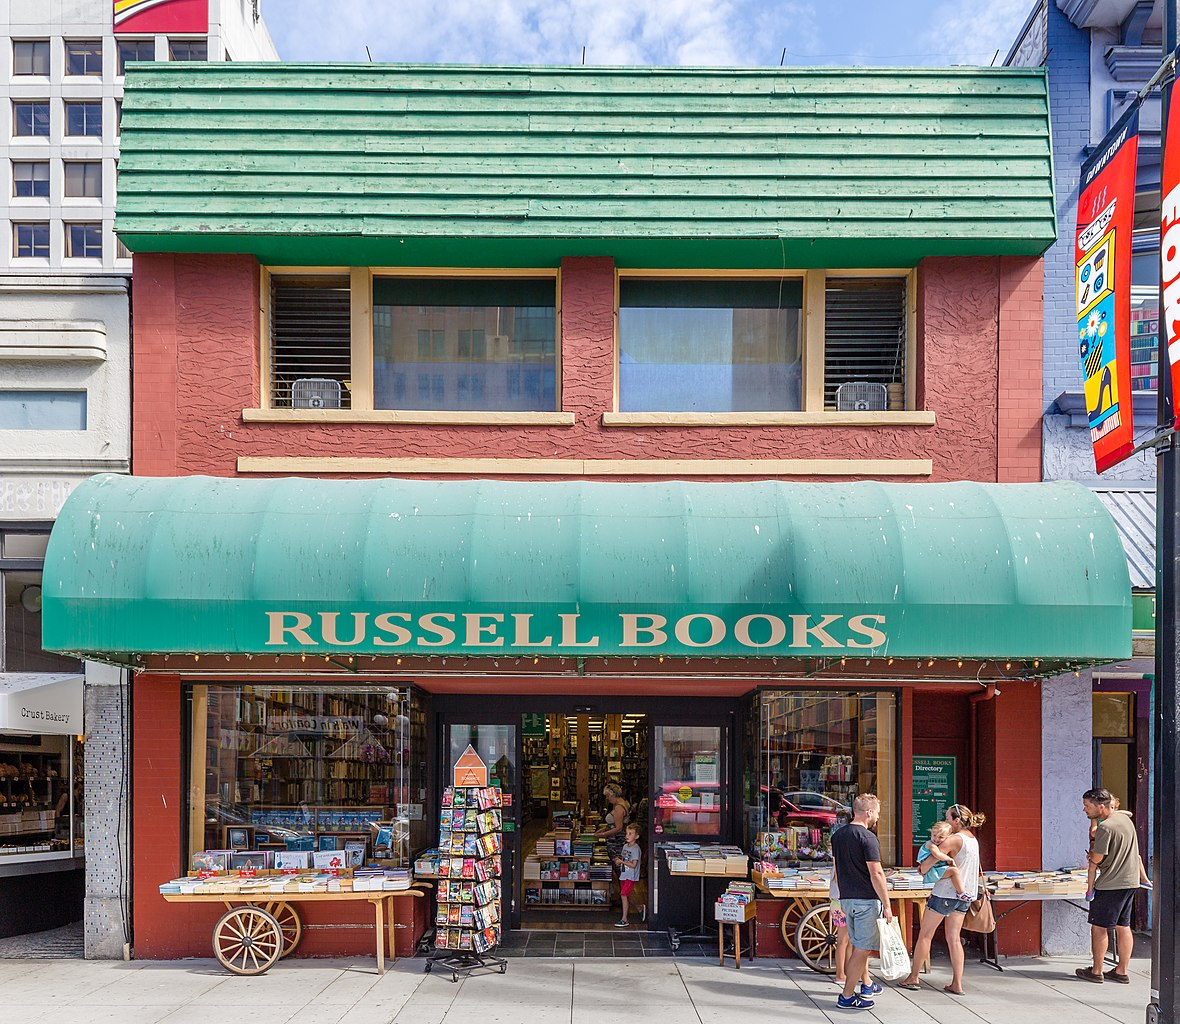 File:Russell Books at Fort St, Victoria, British Columbia